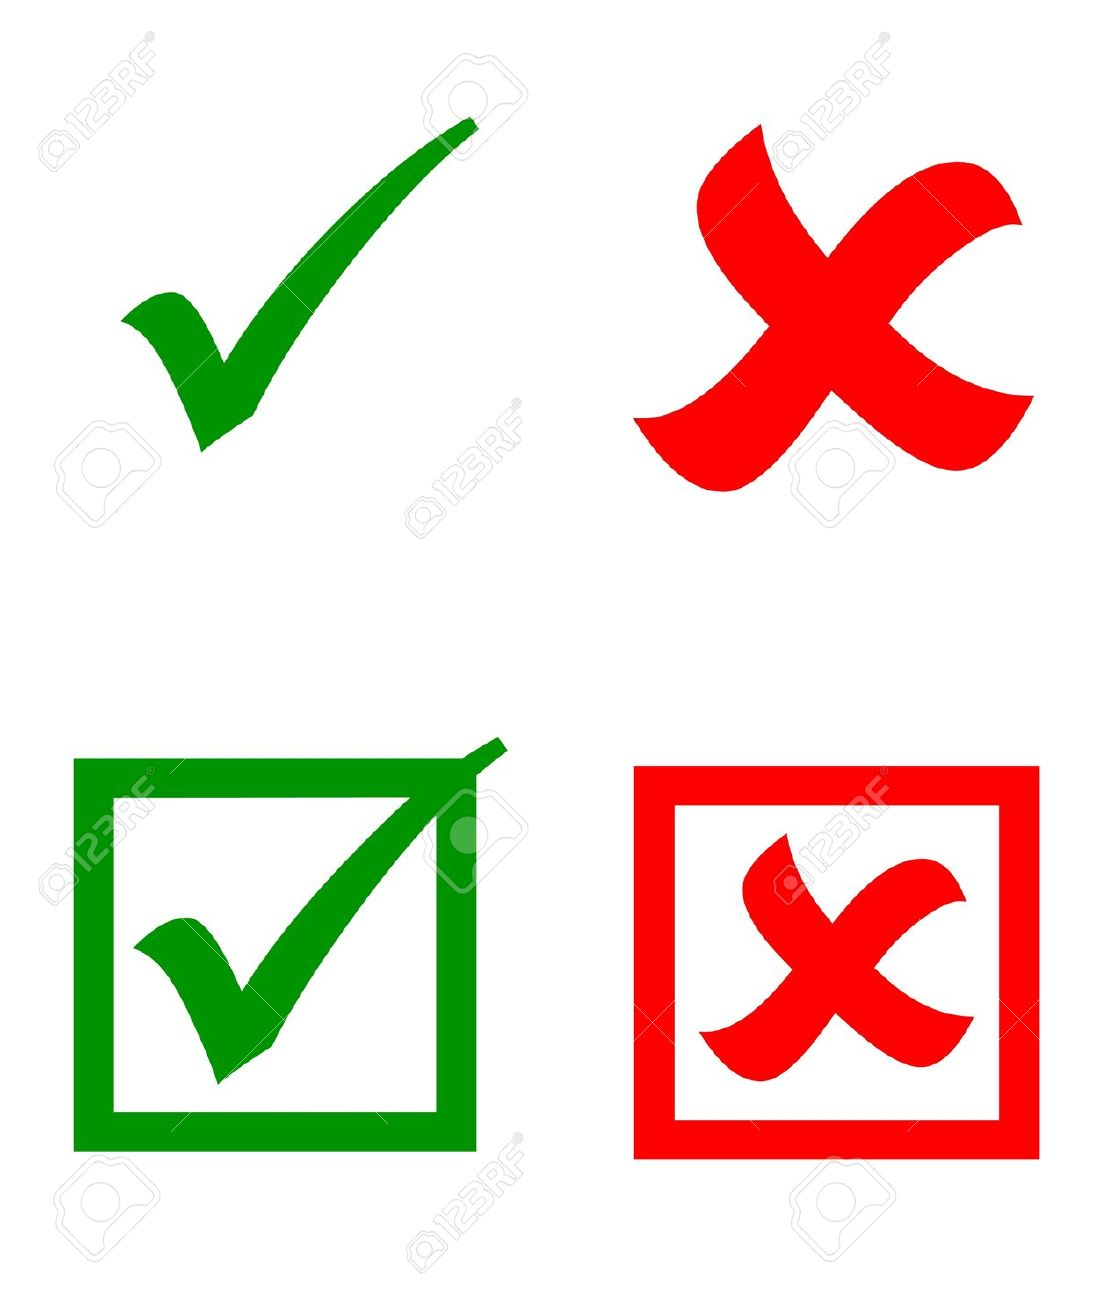 Check Mark Images Free Download Best Check Mark Images On